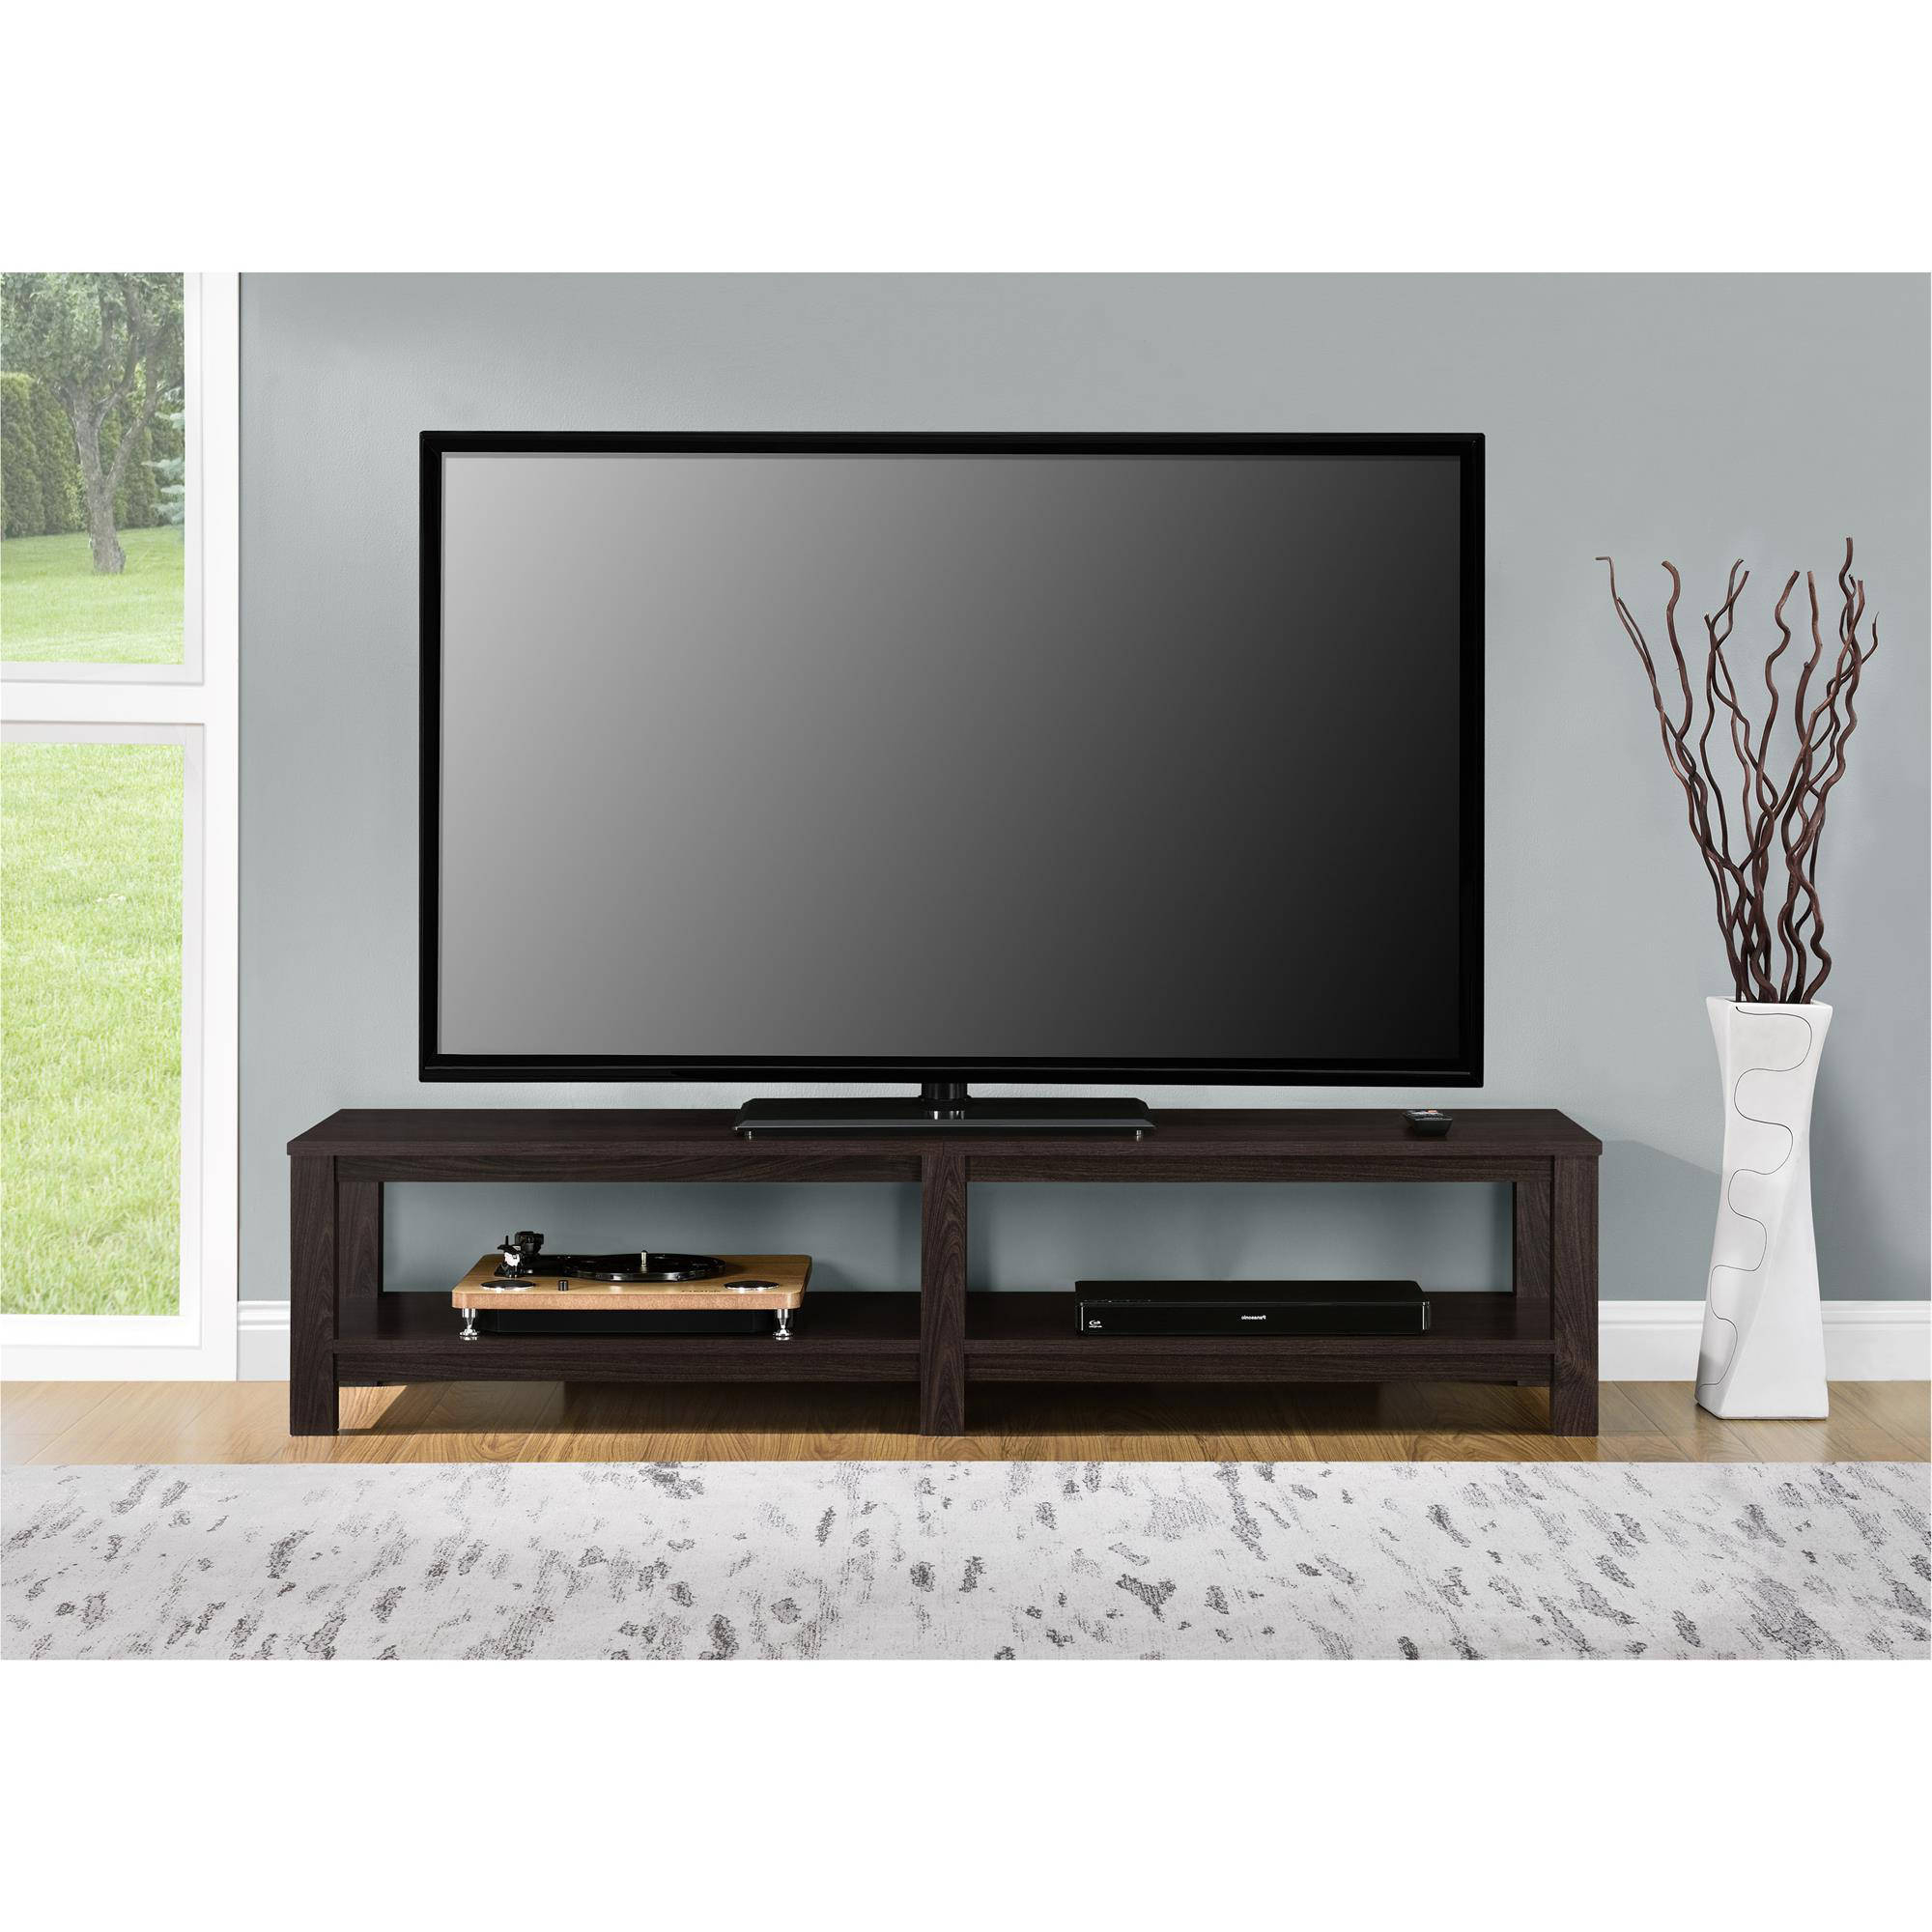 Famous 65 Inch Tv Media Entertainment Stand Console Table Mount With Regard To Mainstays Parsons Tv Stands With Multiple Finishes (View 1 of 10)